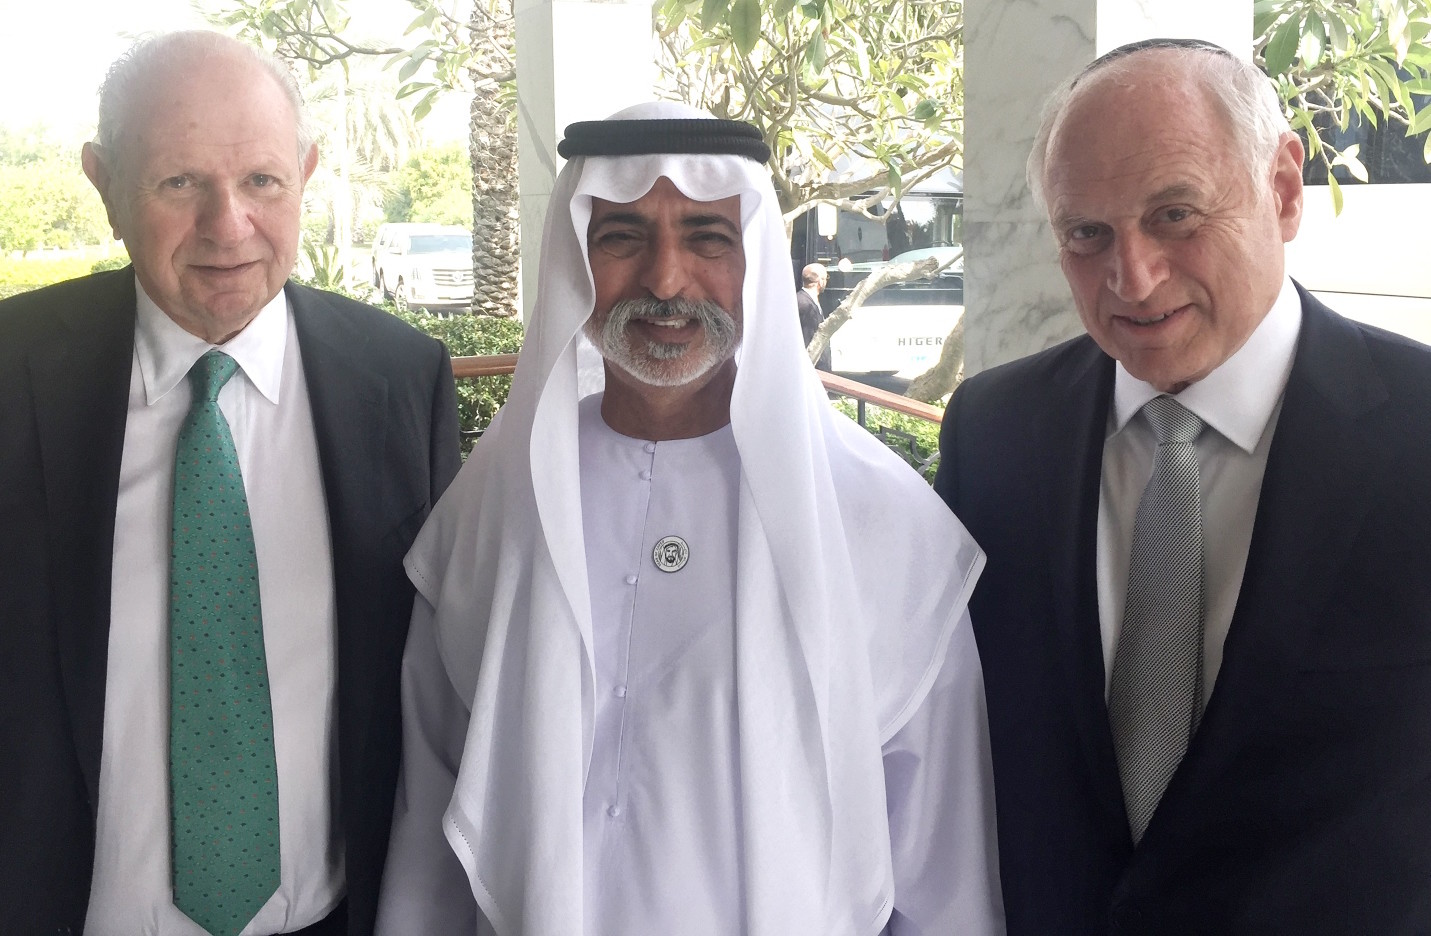 US Jewish leaders see ally in Emirates